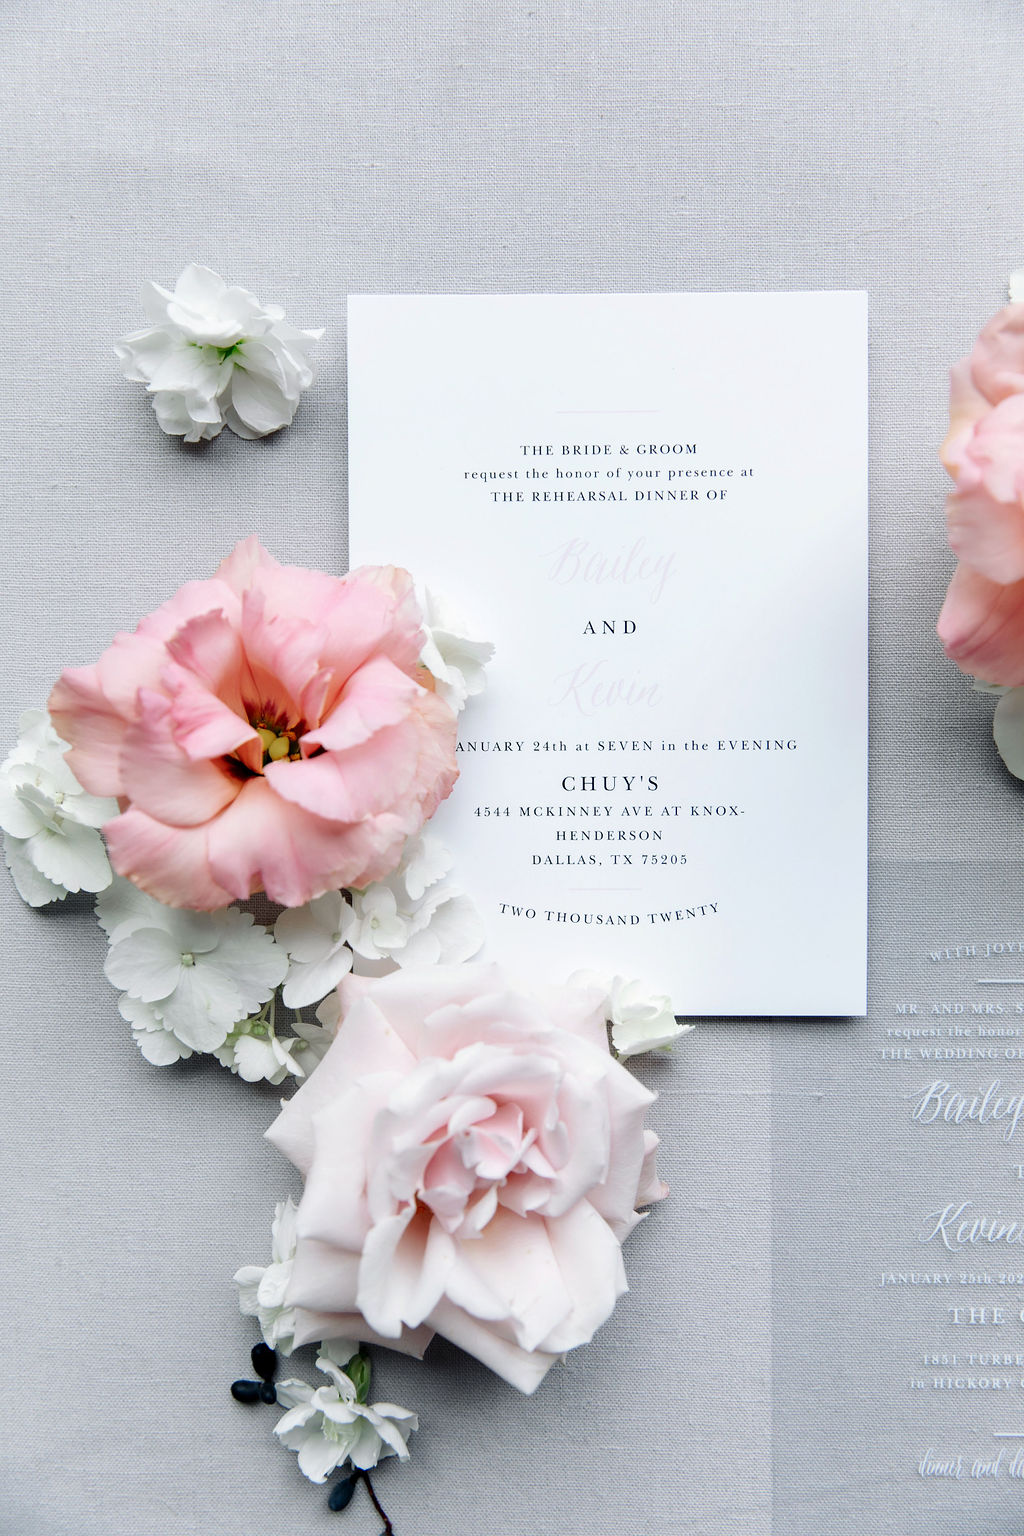 Black and white wedding invitation: Dreamy Pink and Gray Wedding at The Olana